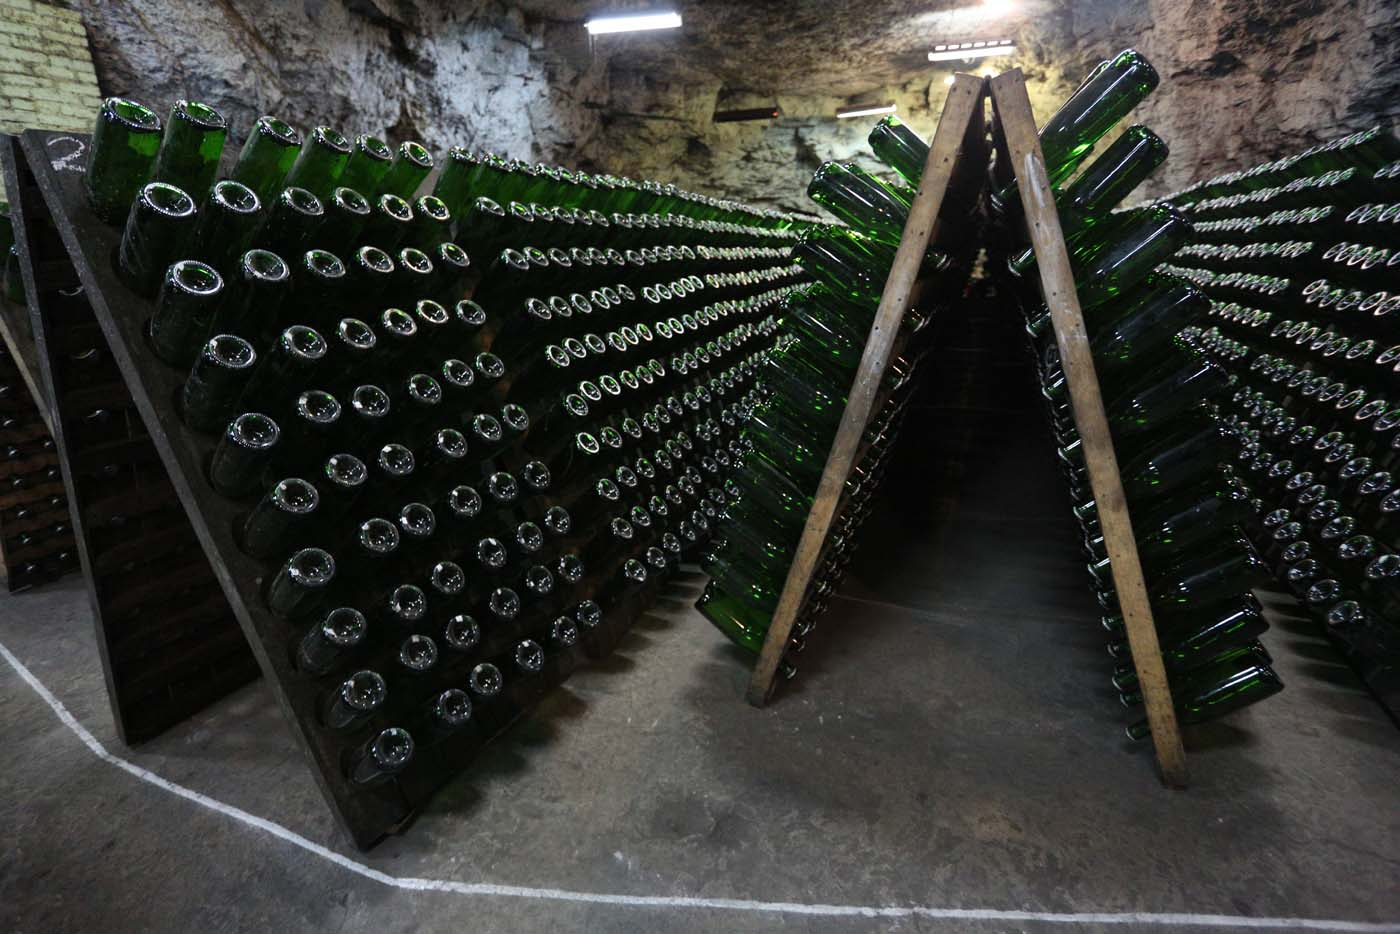 "A picture taken on July 12, 2017 shows bottles of wine in the ""Artwinery"" winery firm in the eastern Ukrainian city of Bakhmut. The winery is located in a government-held town just two dozen kilometres (15 miles) from the frontline in Ukraine's low-level war, where the army and Russian-backed rebels continue to lob deadly artillery barrages at each other. The town spent around a month under rebel control in 2014, and in 2015 the frontline was so close that the town came under rebel shelling. But despite more than three years of fighting that has claimed some 10,000 lives, Nasyrov's employer, Artwinery, has never stopped production. / AFP PHOTO / Aleksey FILIPPOV"